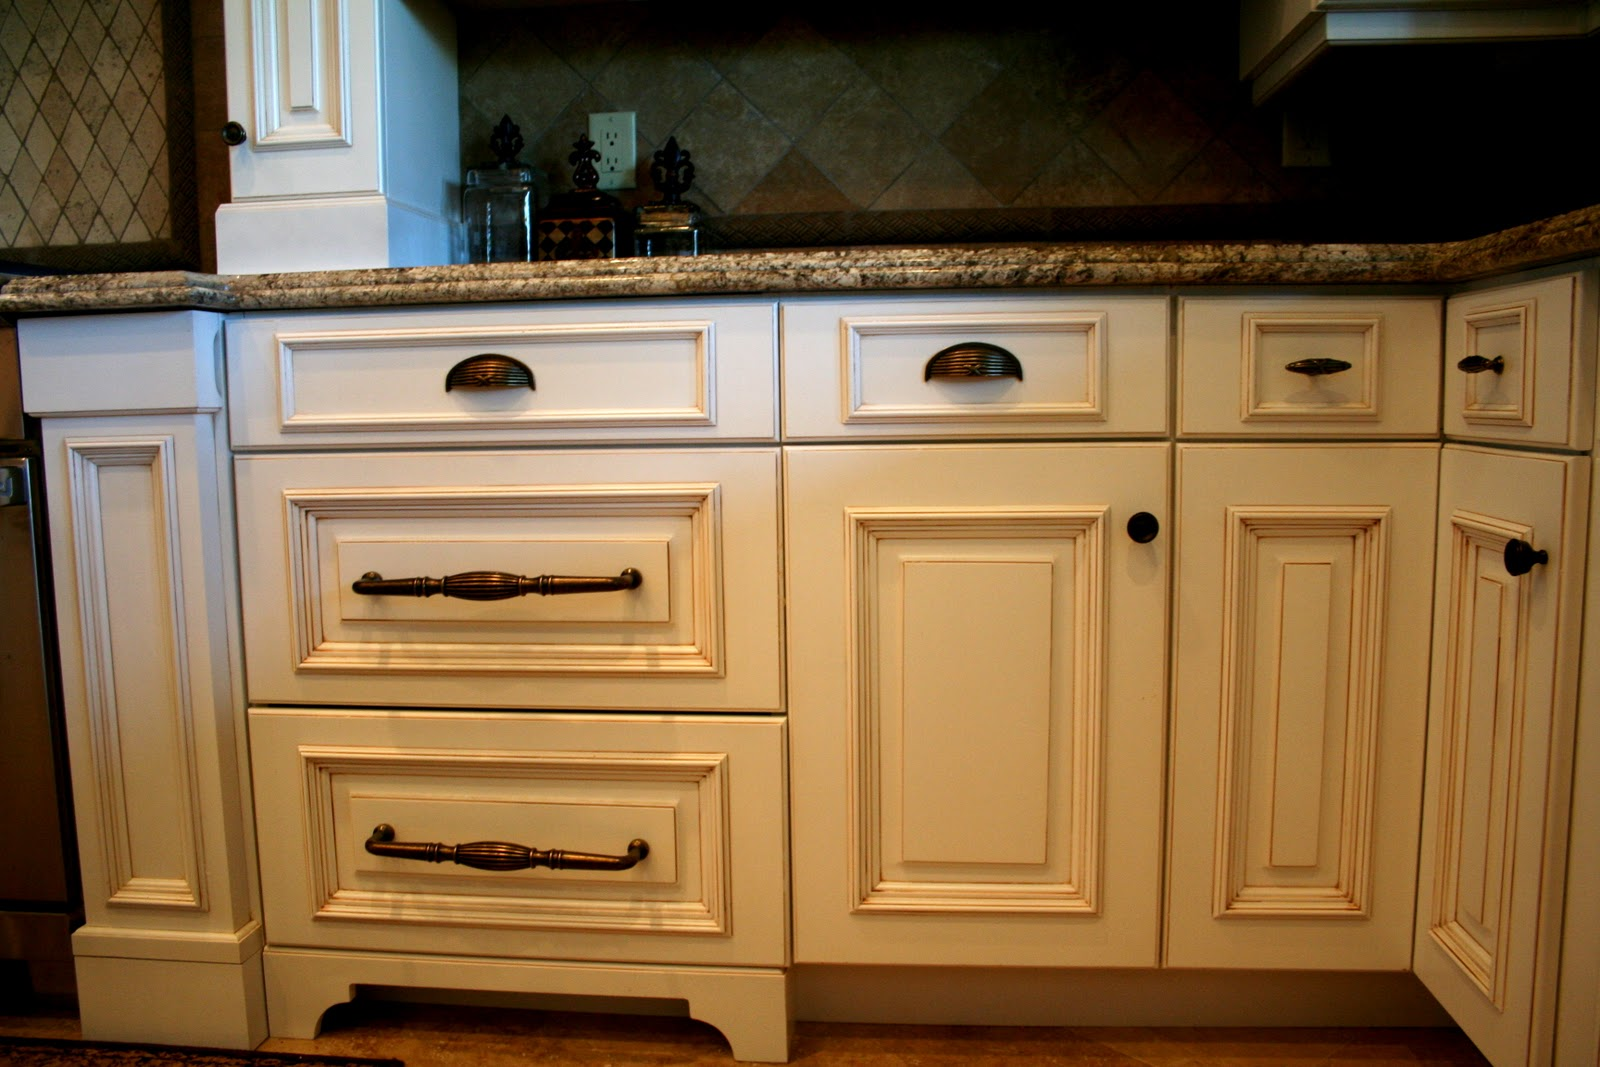 Kitchen Cabinets Knobs Or Pulls Design Dump Mixing Hardware In The Kitchen